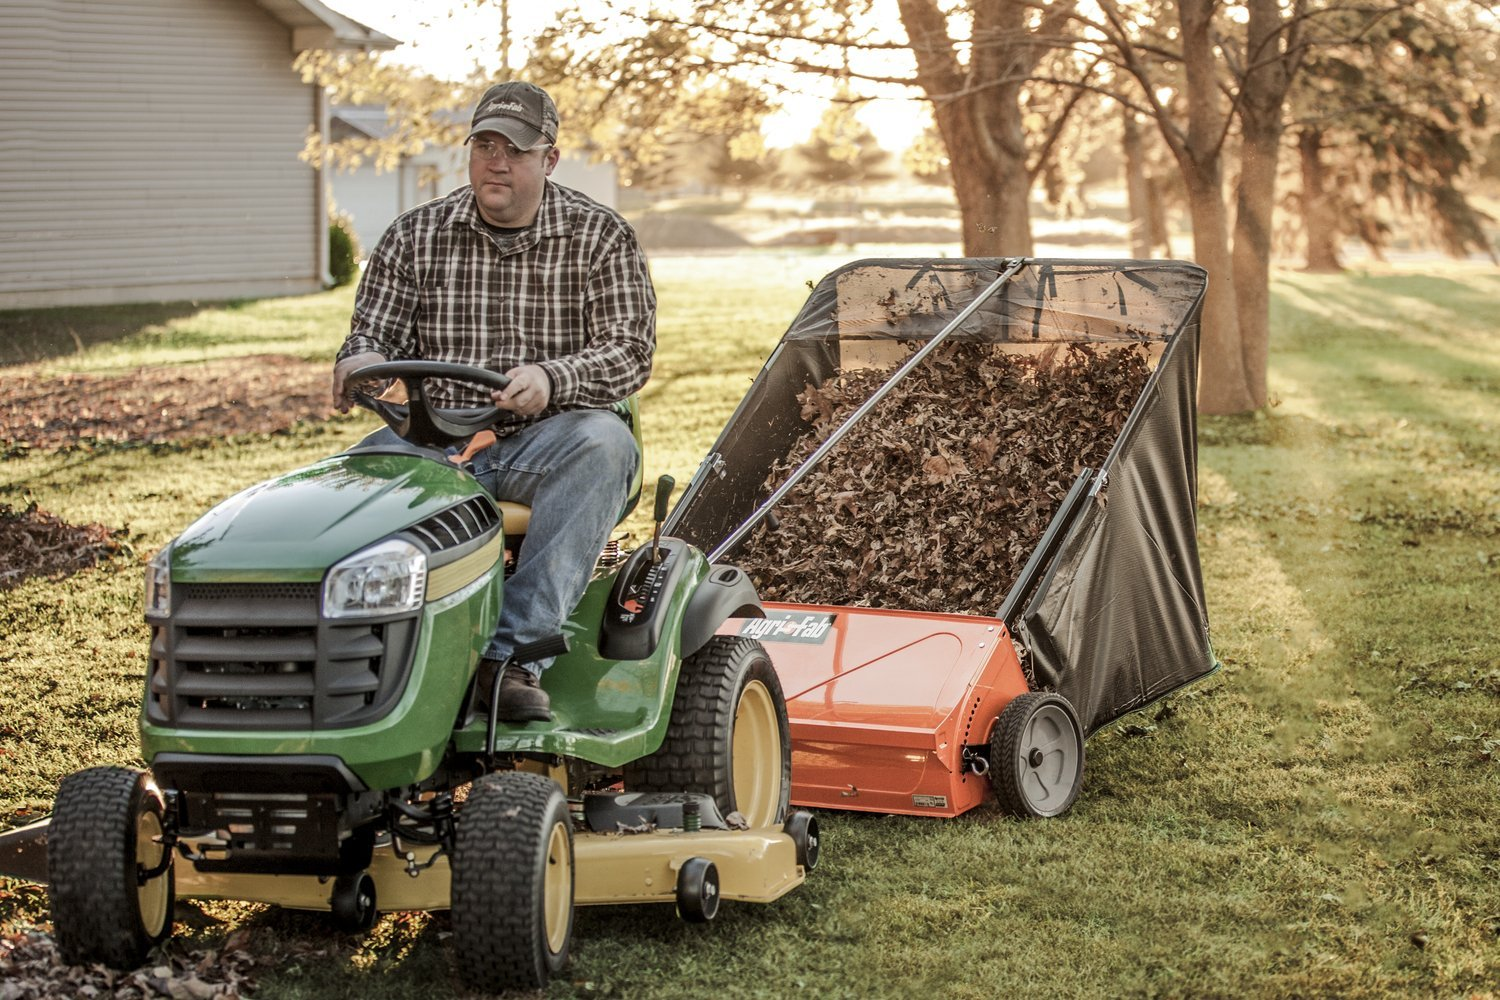 Best Lawn Sweeper for Pine Needles